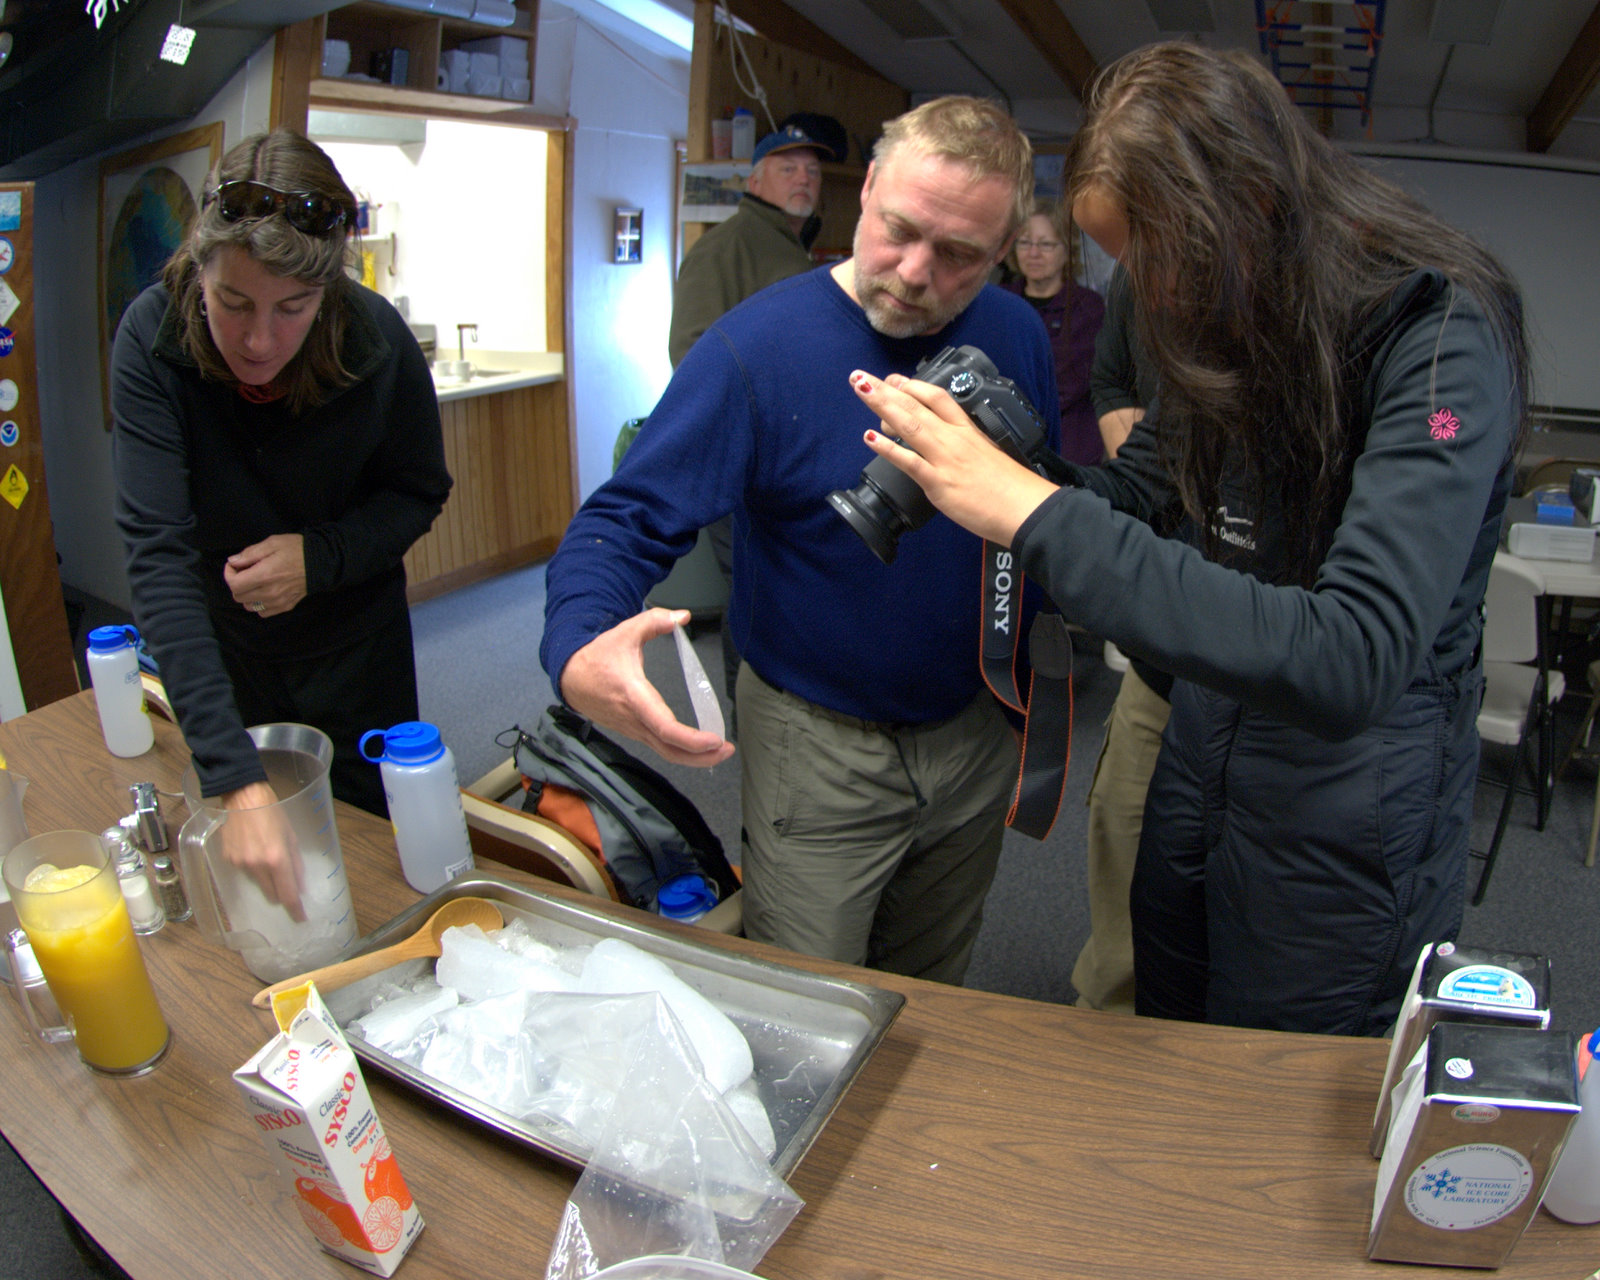 To learn about ice-core science, the group examined bits of discarded ice core to see the bubbles that contain tiny packets of air from days gone by; they also floated bits of core in orange juice to experience the pop and fizz of the compressed air being released from the melting ice.